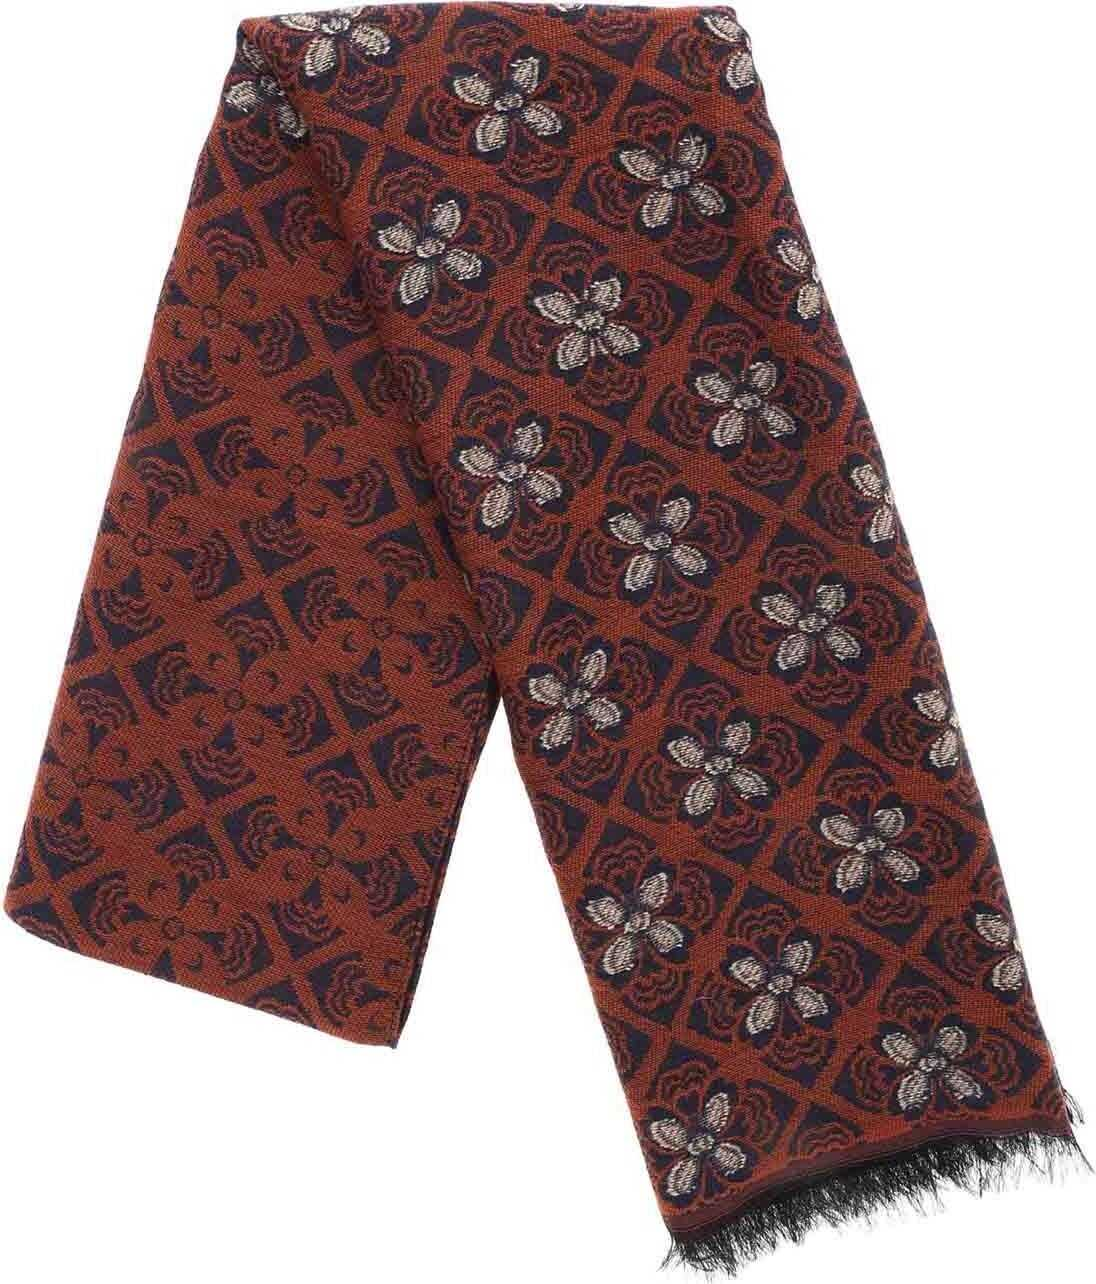 L.B.M. 1911 Scarf In Brown With Floral Embroidery Brown